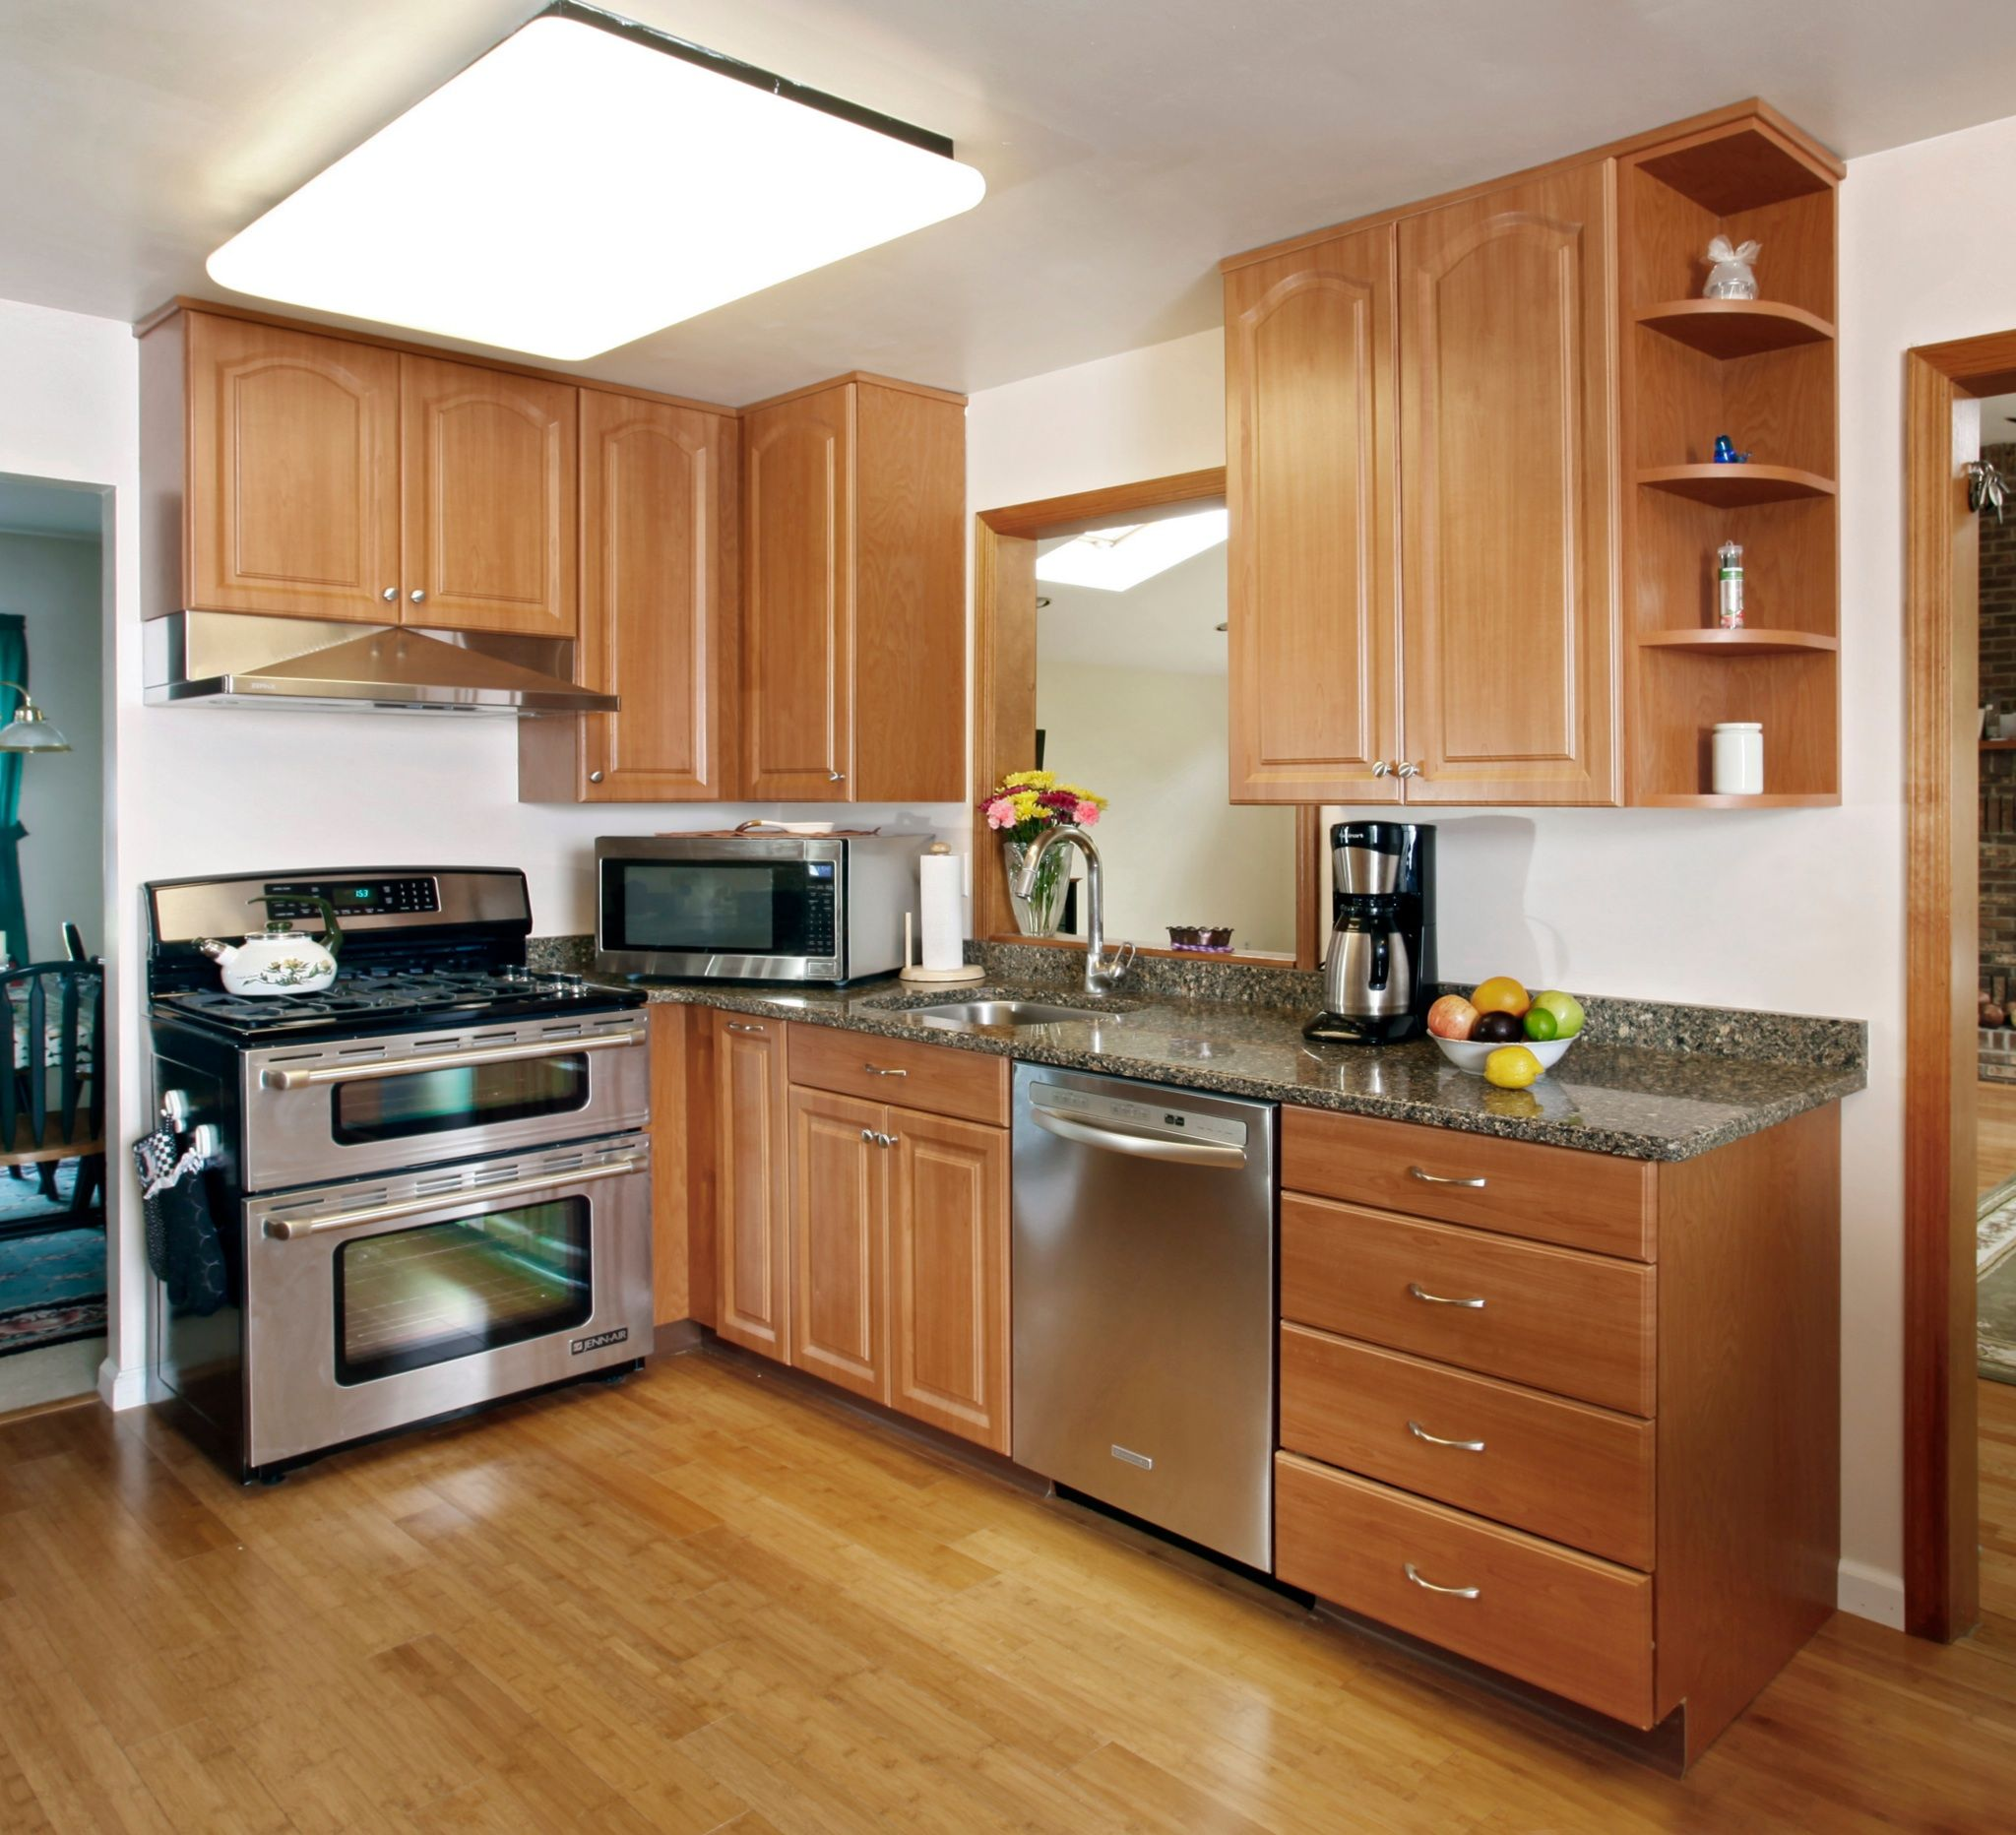 KitchenQuartz Countertops With Oak Cabinets Kitchen With